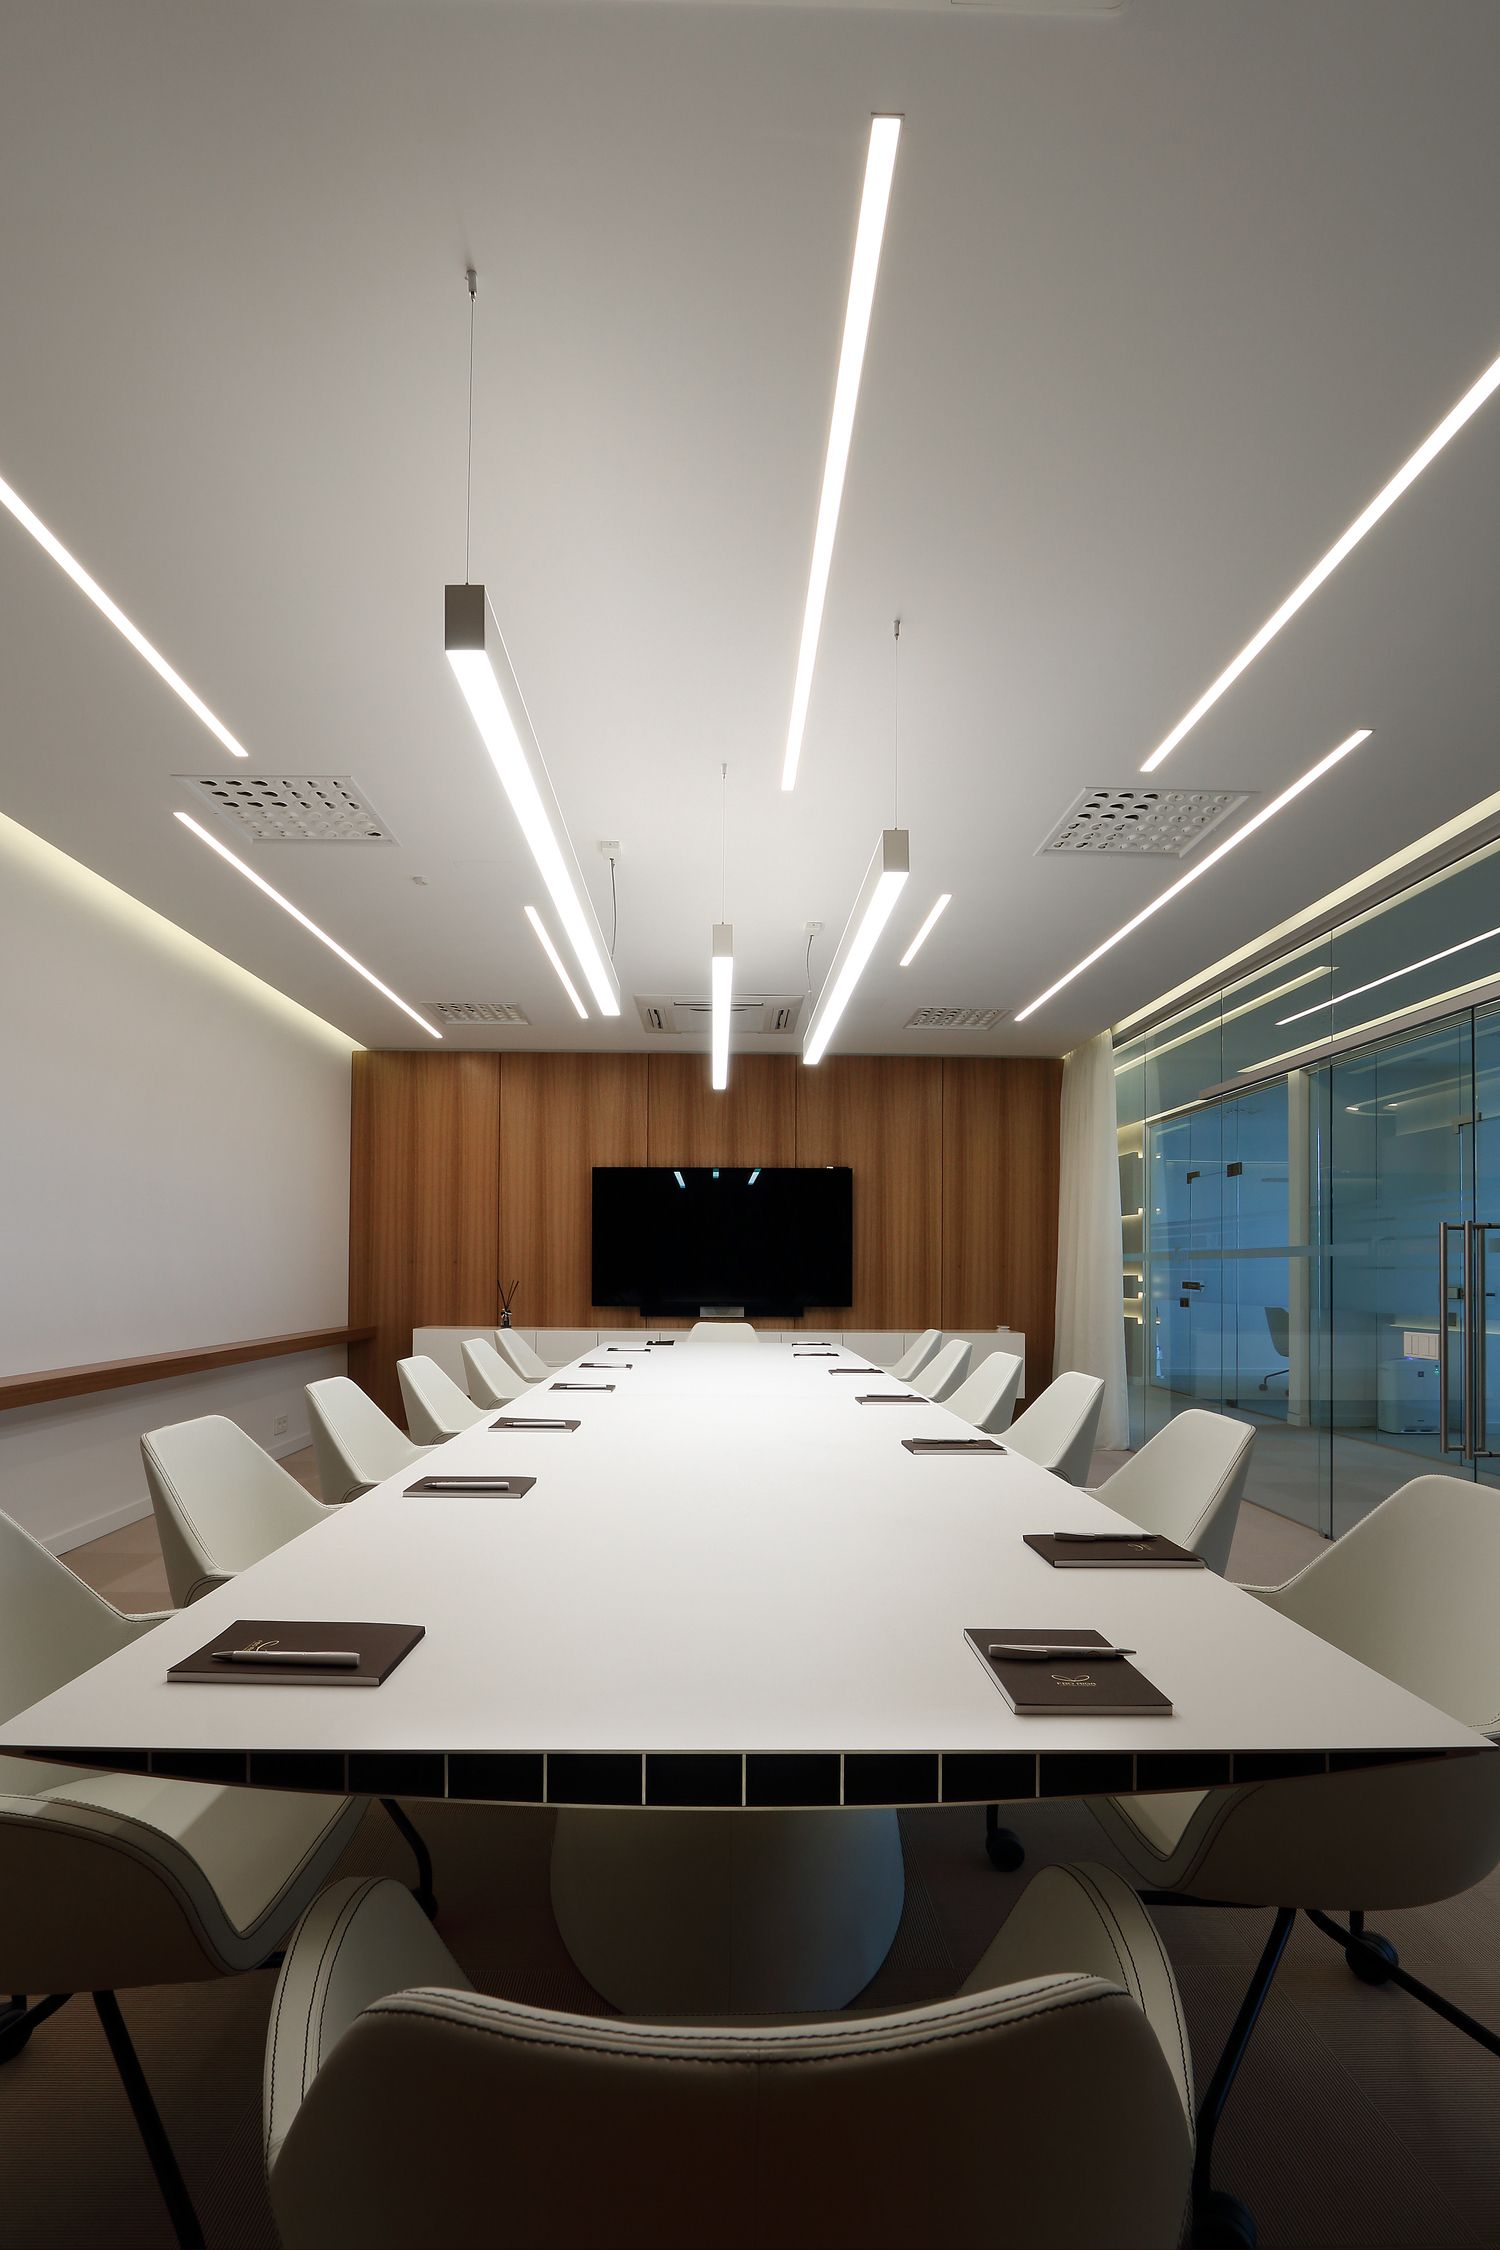 Conference Room Lighting Design: Conference Room Design, Meeting Room Design